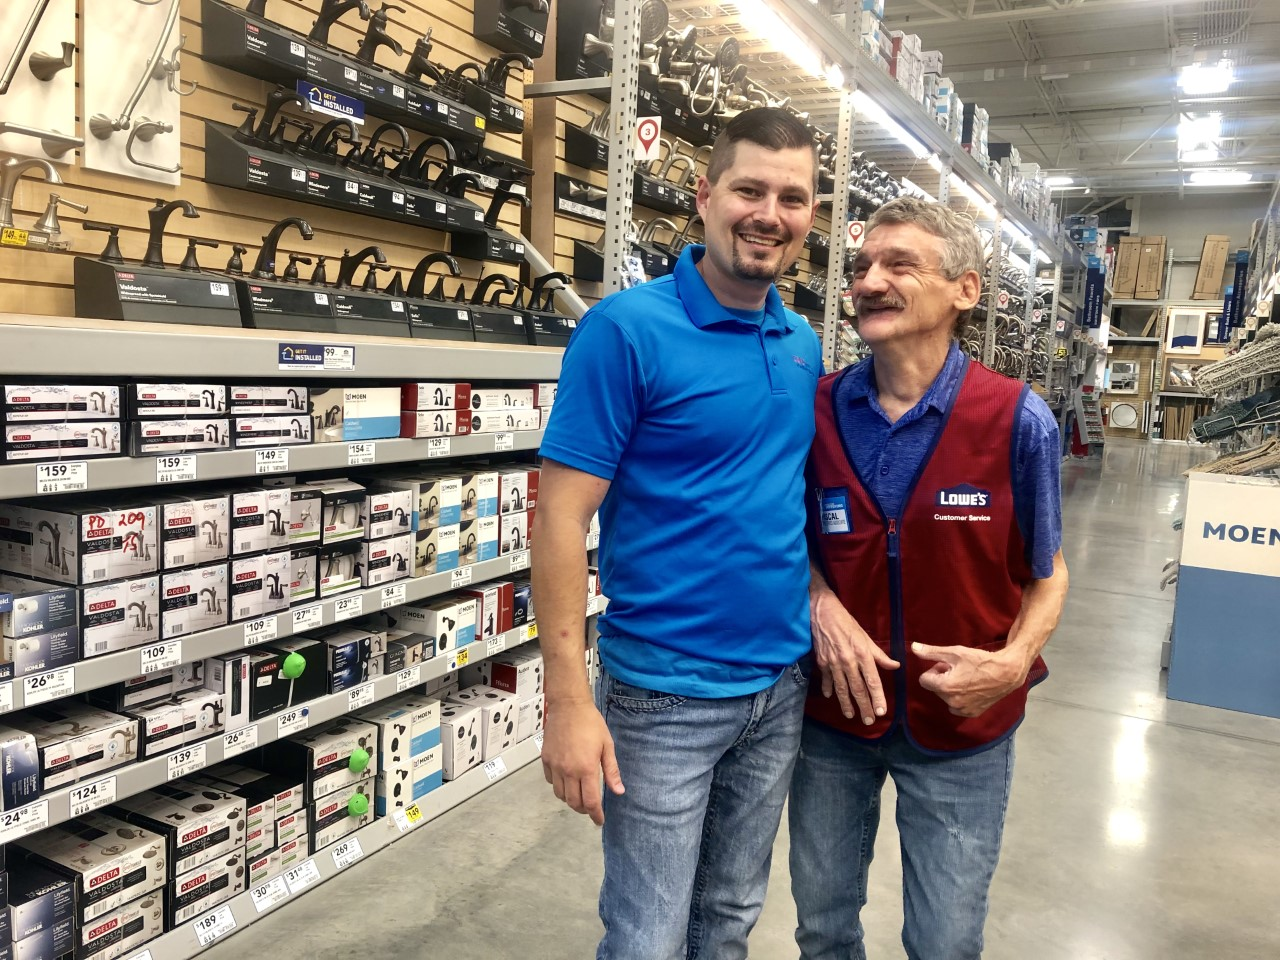 LOWE'S EMPLOYEE PASCAL LEWIS